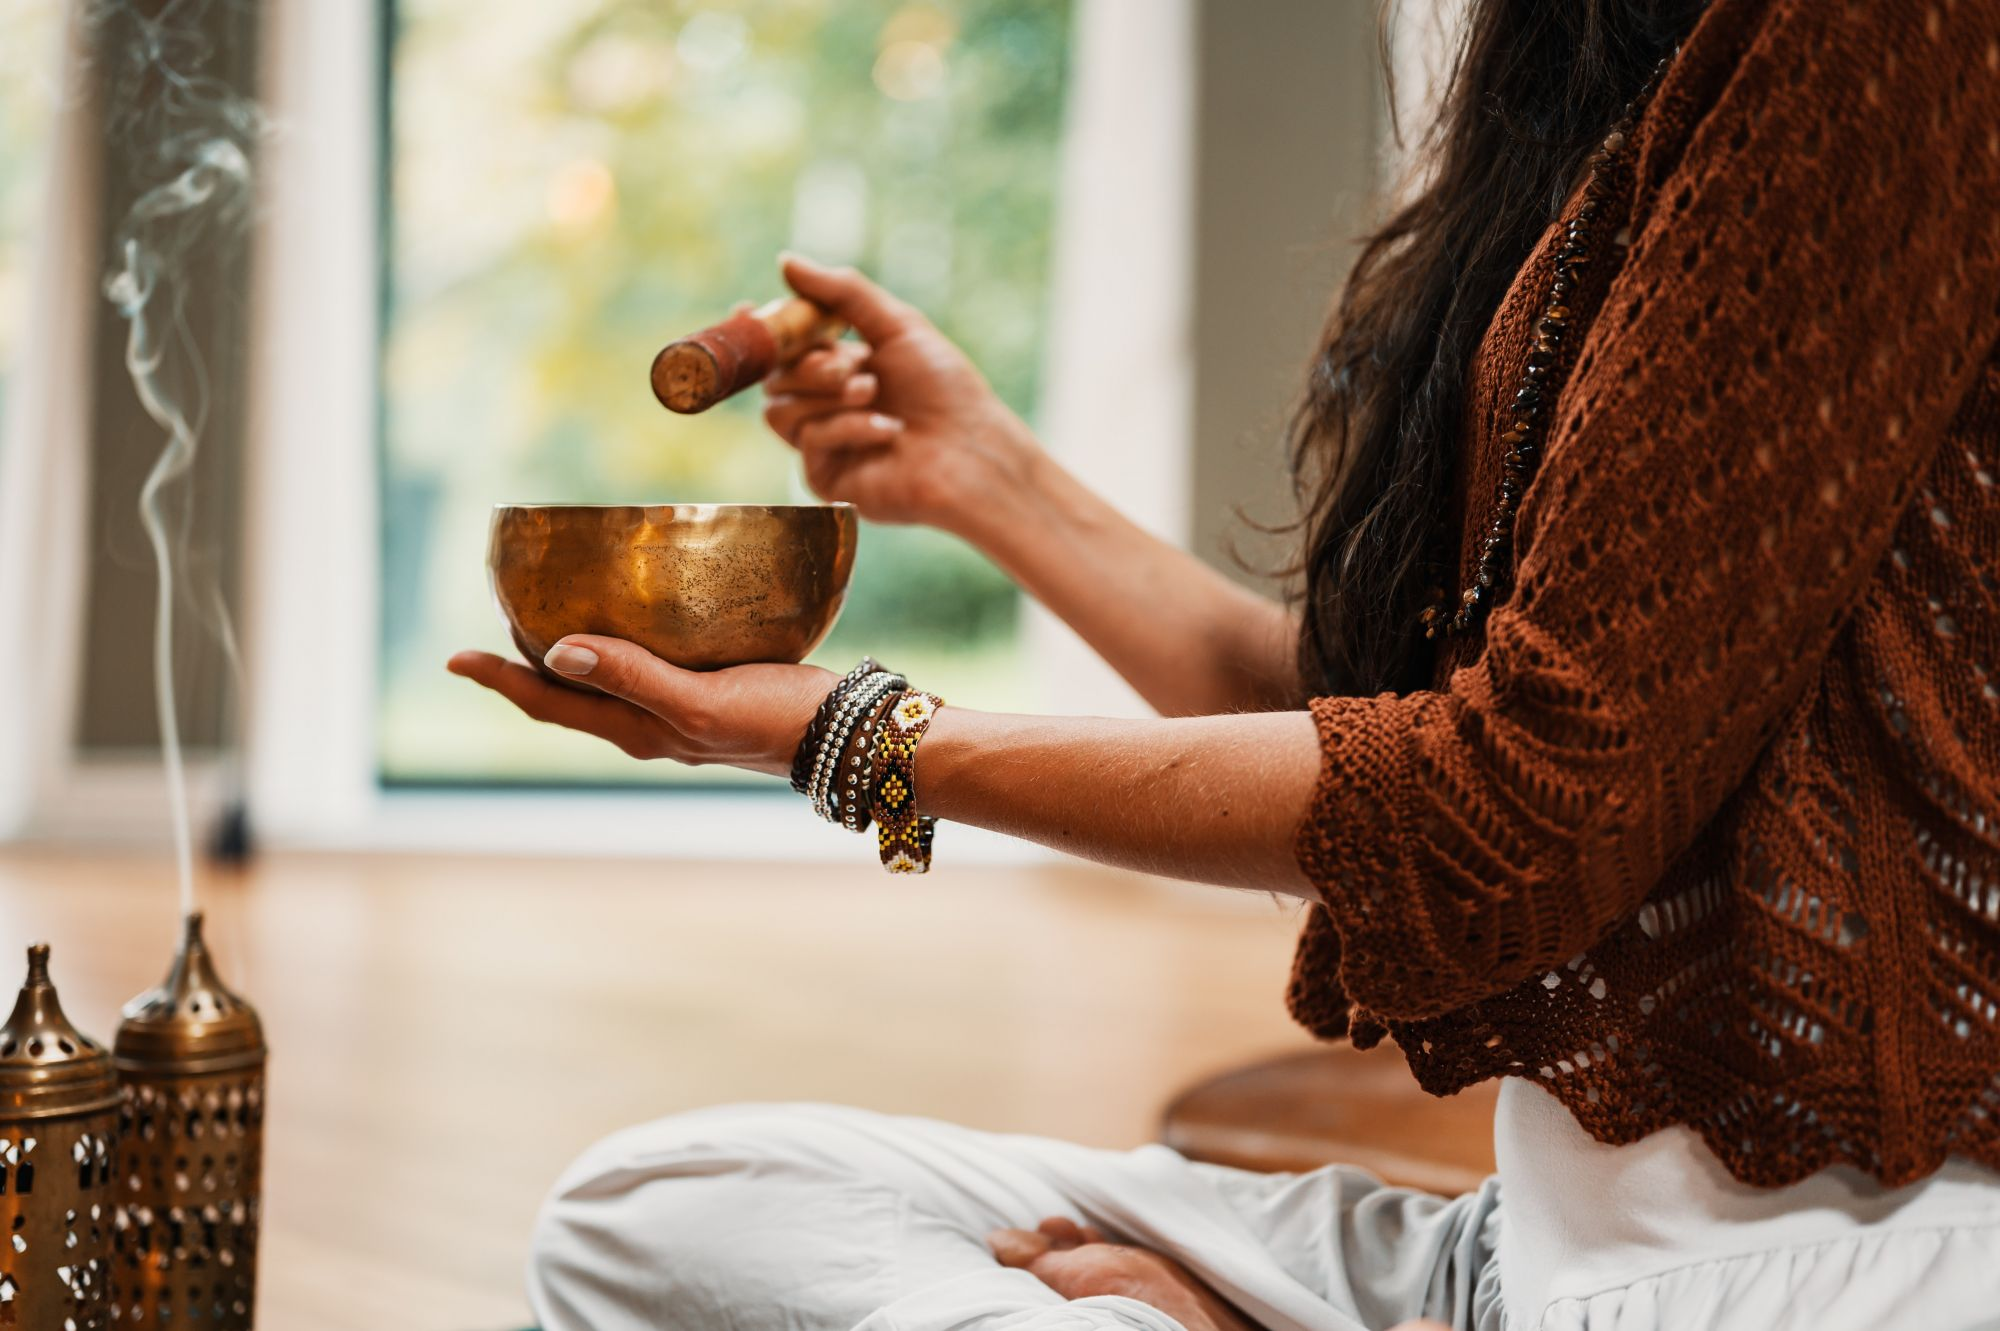 How To Build A Meditation Space At Home: Meditation Trainers, Singing Bowls & More